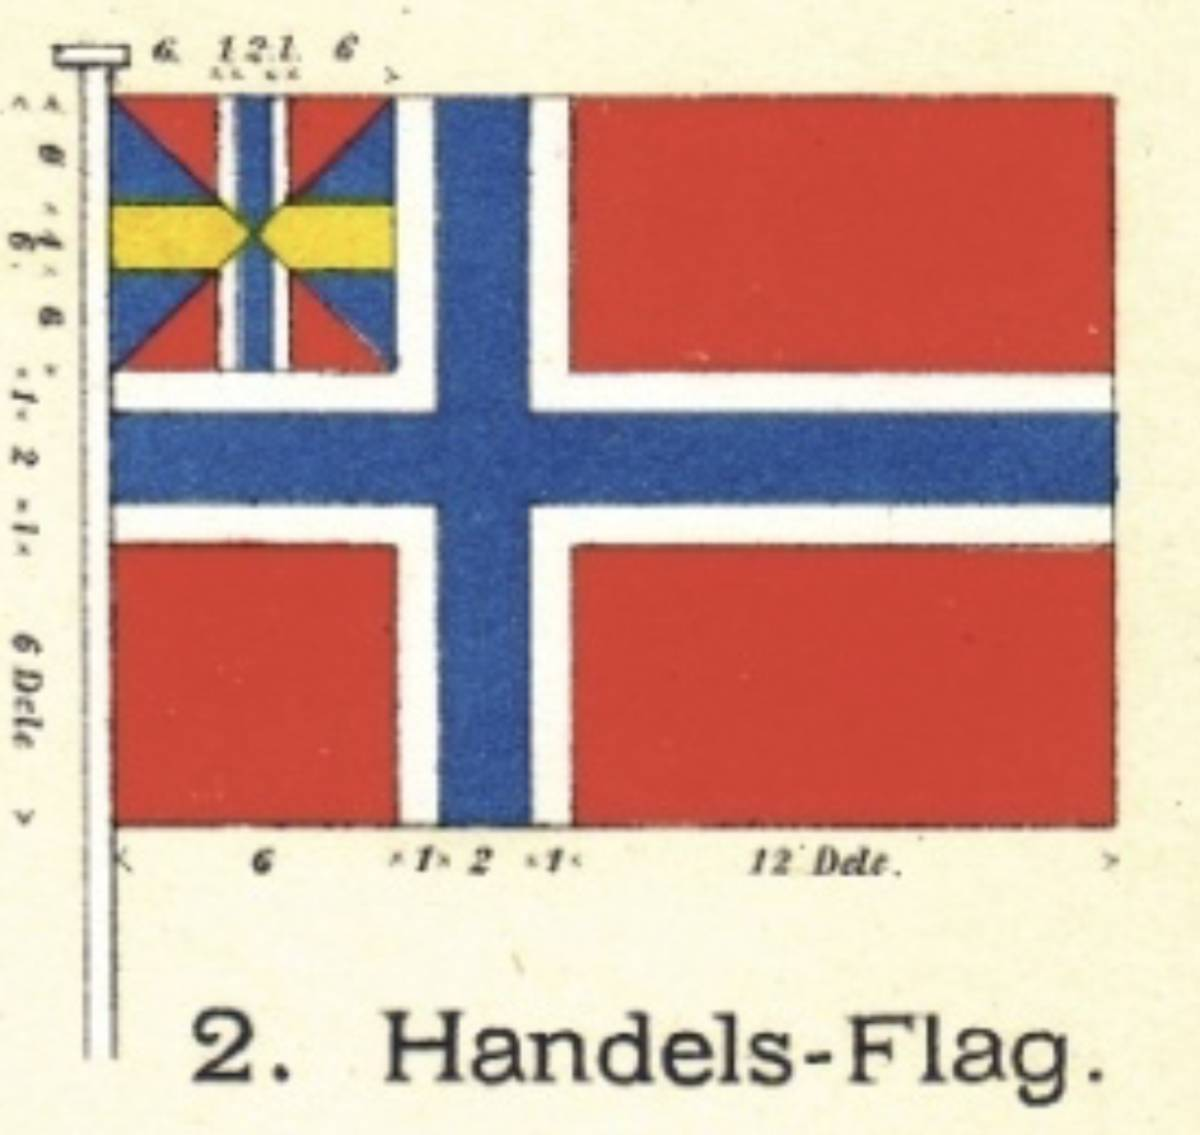 Norway's flag from 1844 – 1898